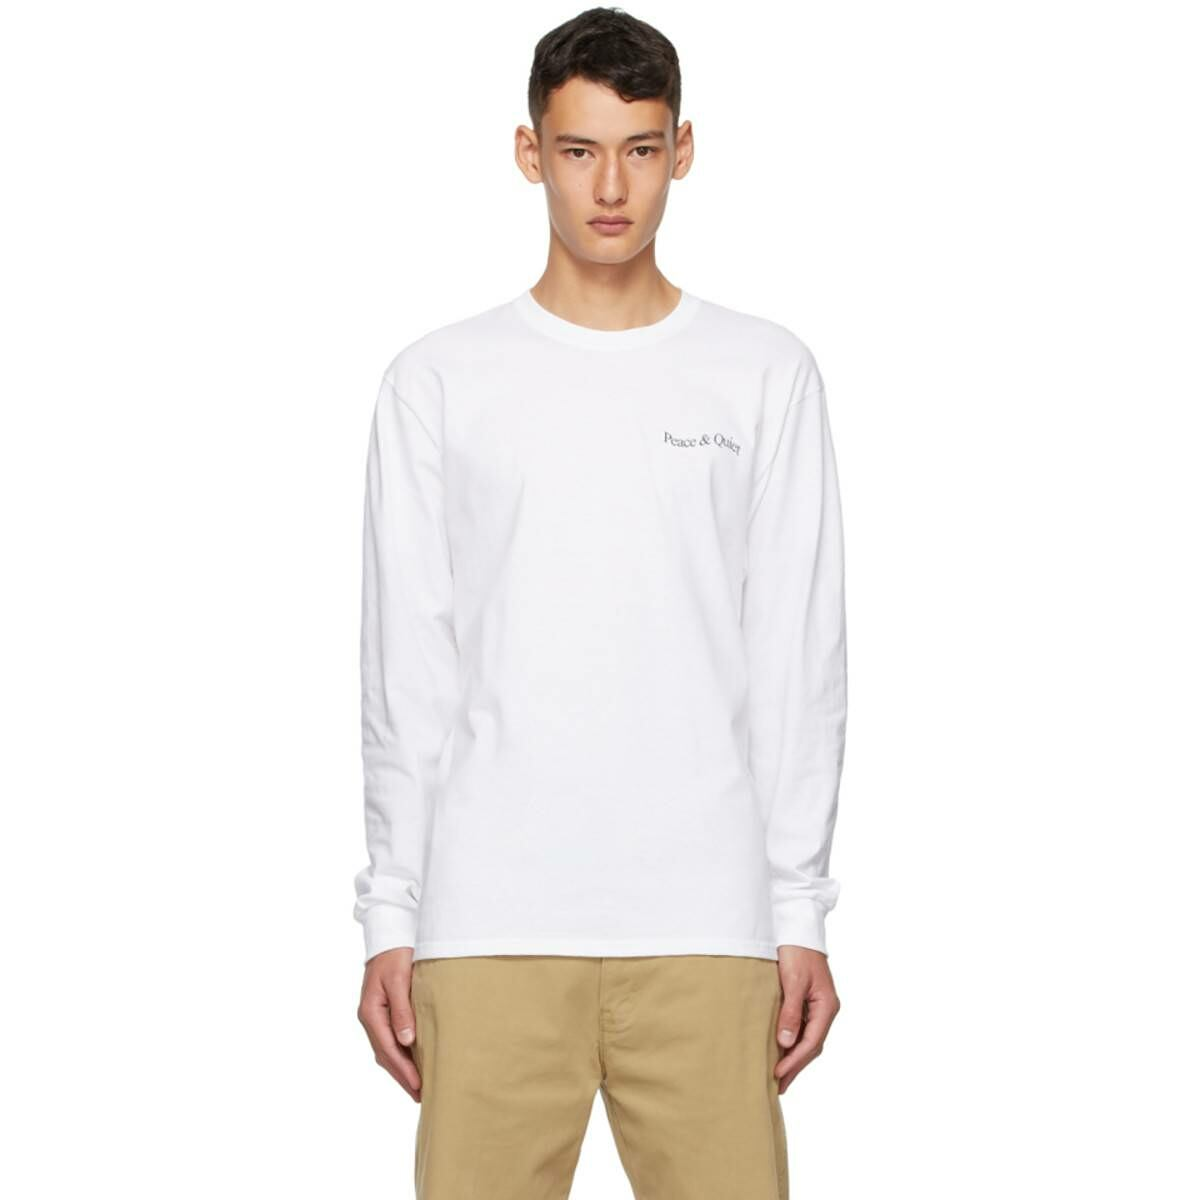 Museum of Peace and Quiet White Wordmark Warped Long Sleeve T-Shirt Ssense USA MEN Men FASHION Mens T-SHIRTS